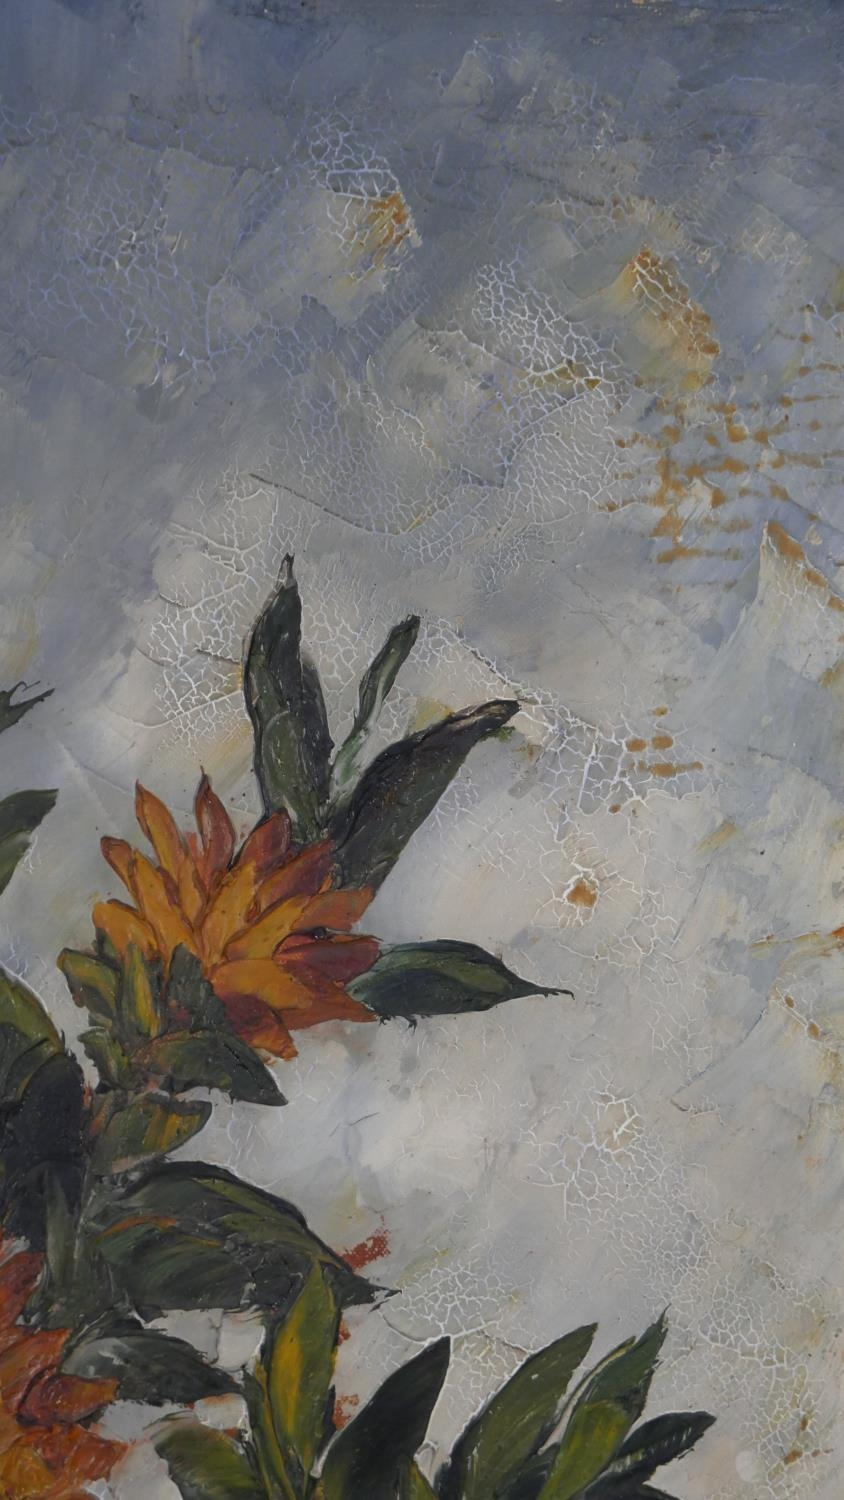 A framed oil on canvas, sunflowers in a vase, signed Van Dam. H.81 W.55.5cm - Image 5 of 7